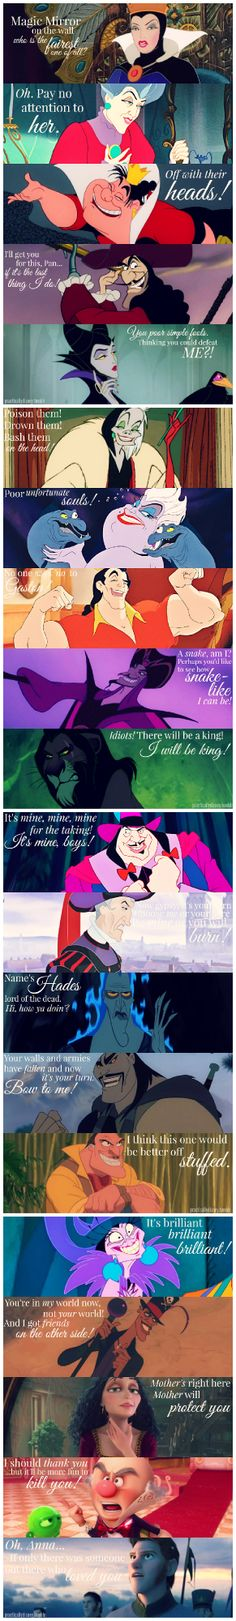 Hans.... I think out of all the Disney Villains he was one of the worst